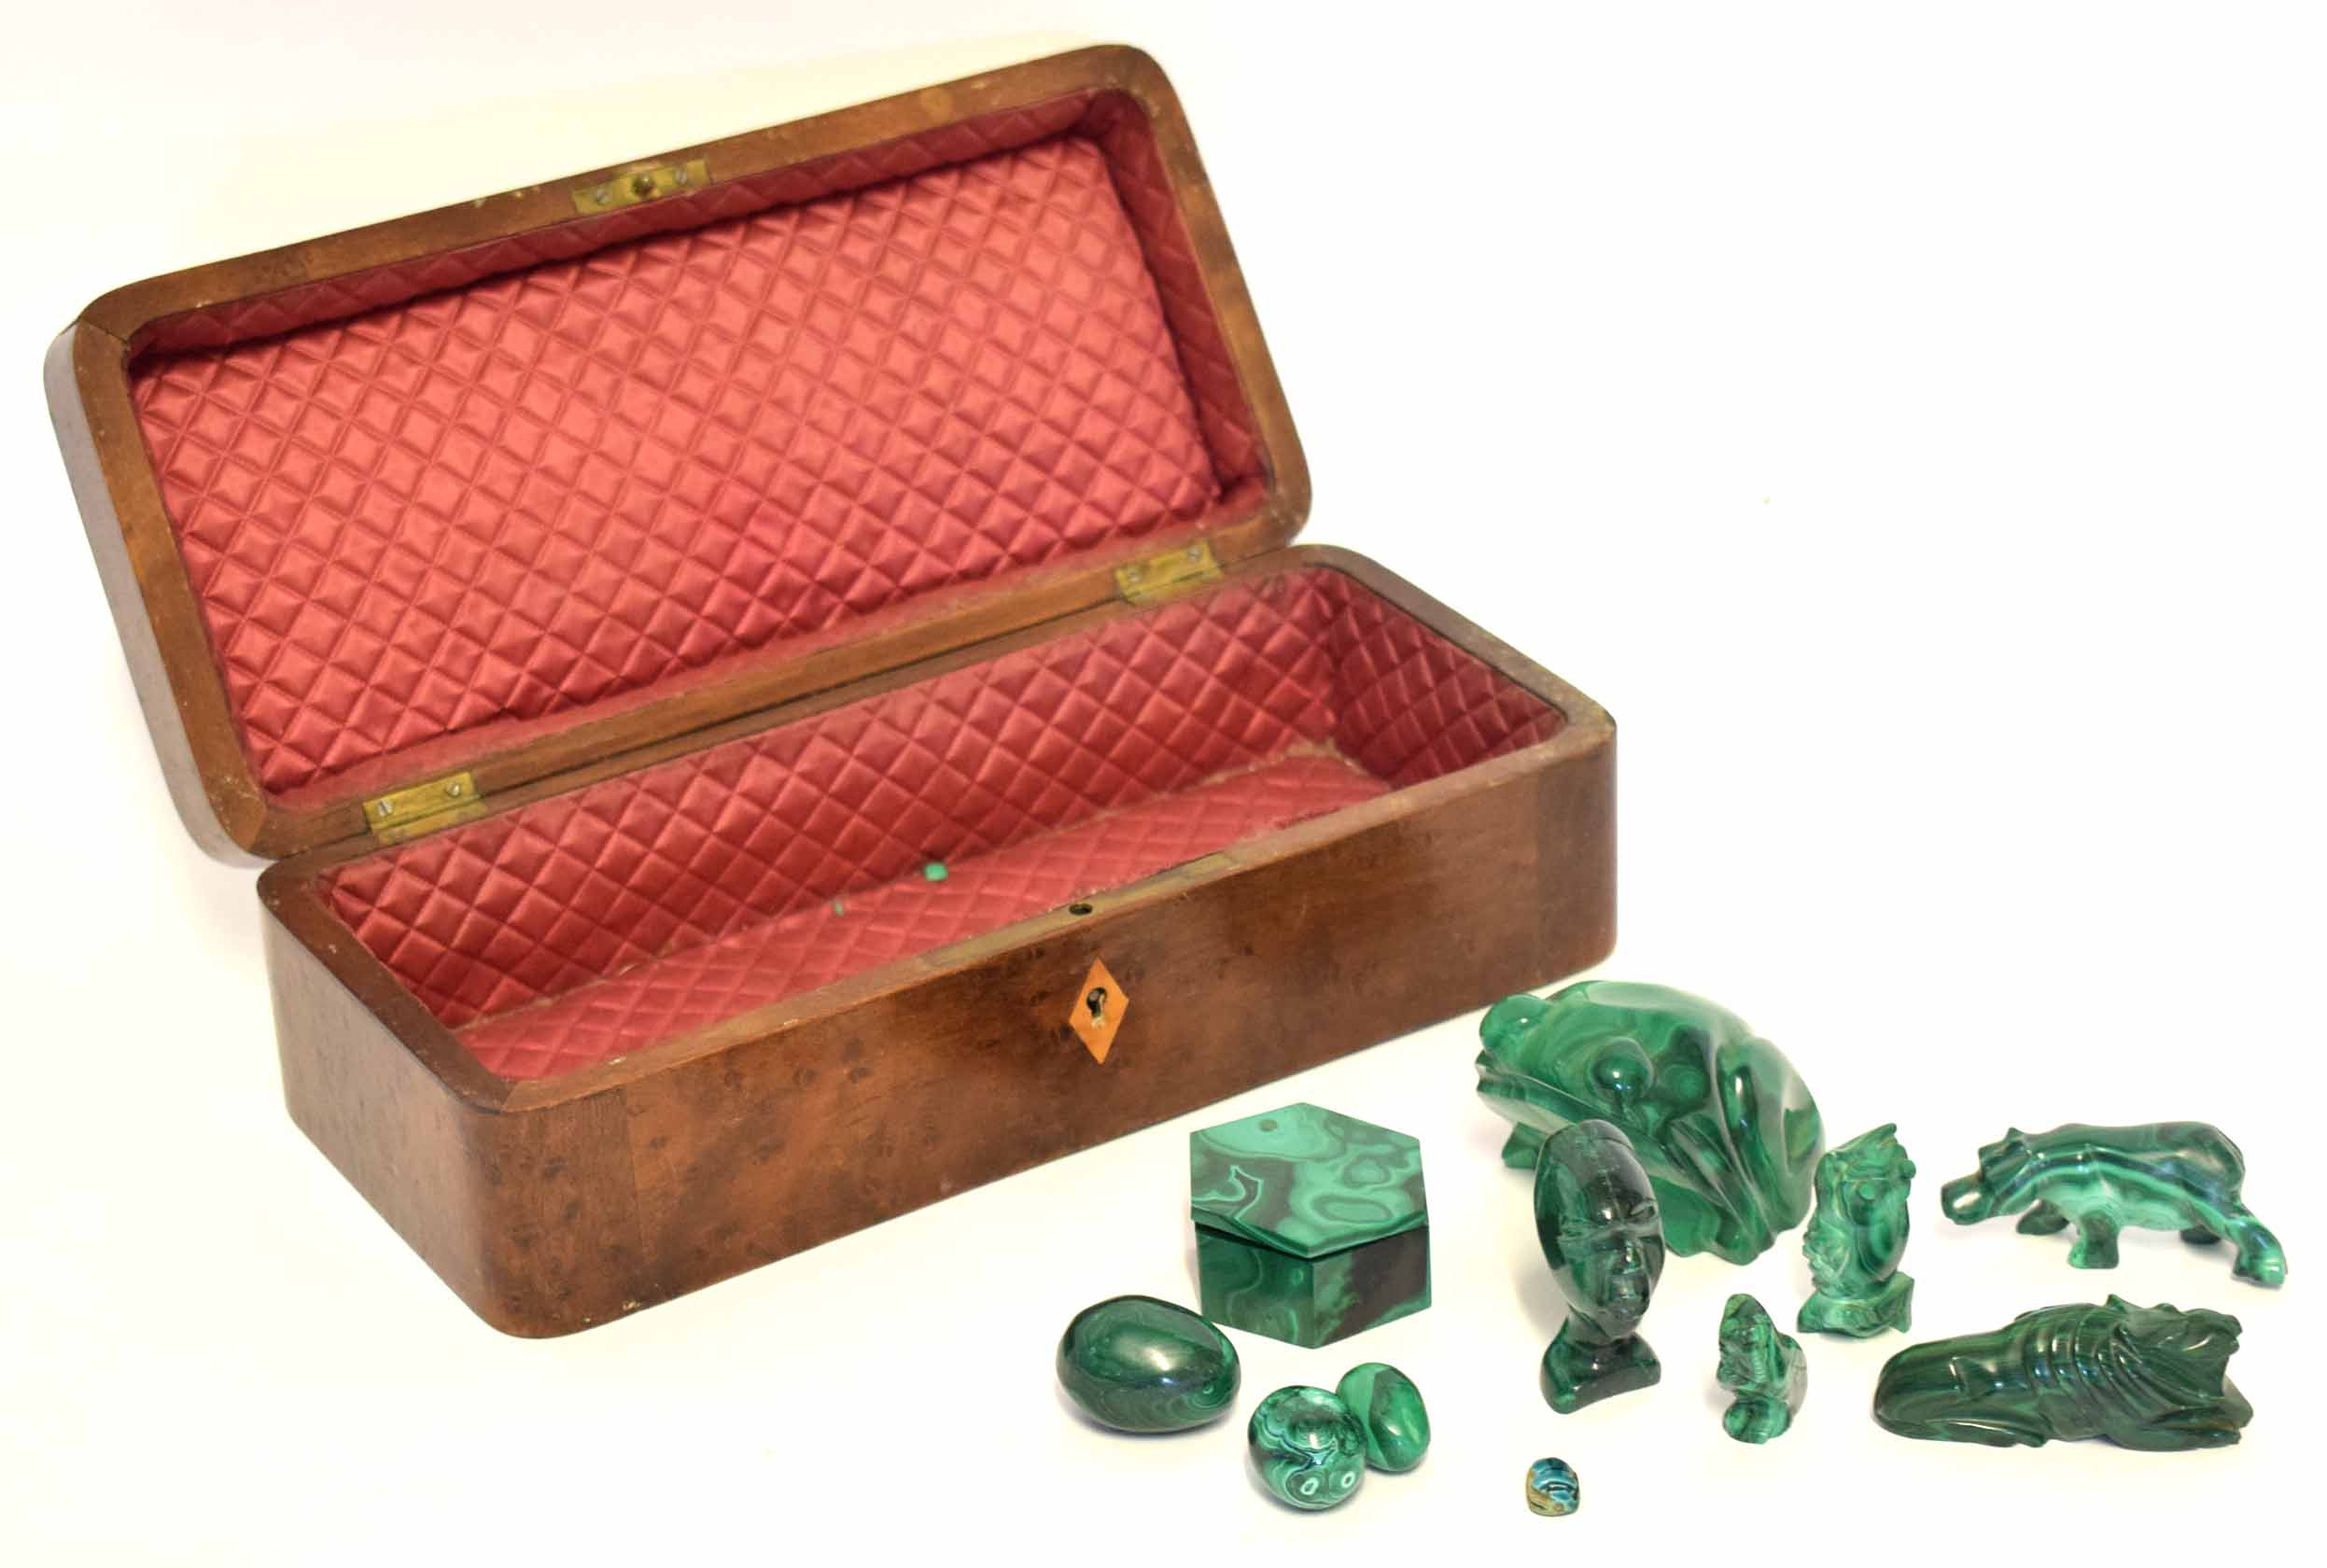 Lot 26 - Lacquered box with a chinoiserie design, together with a further wooden box containing jadeite